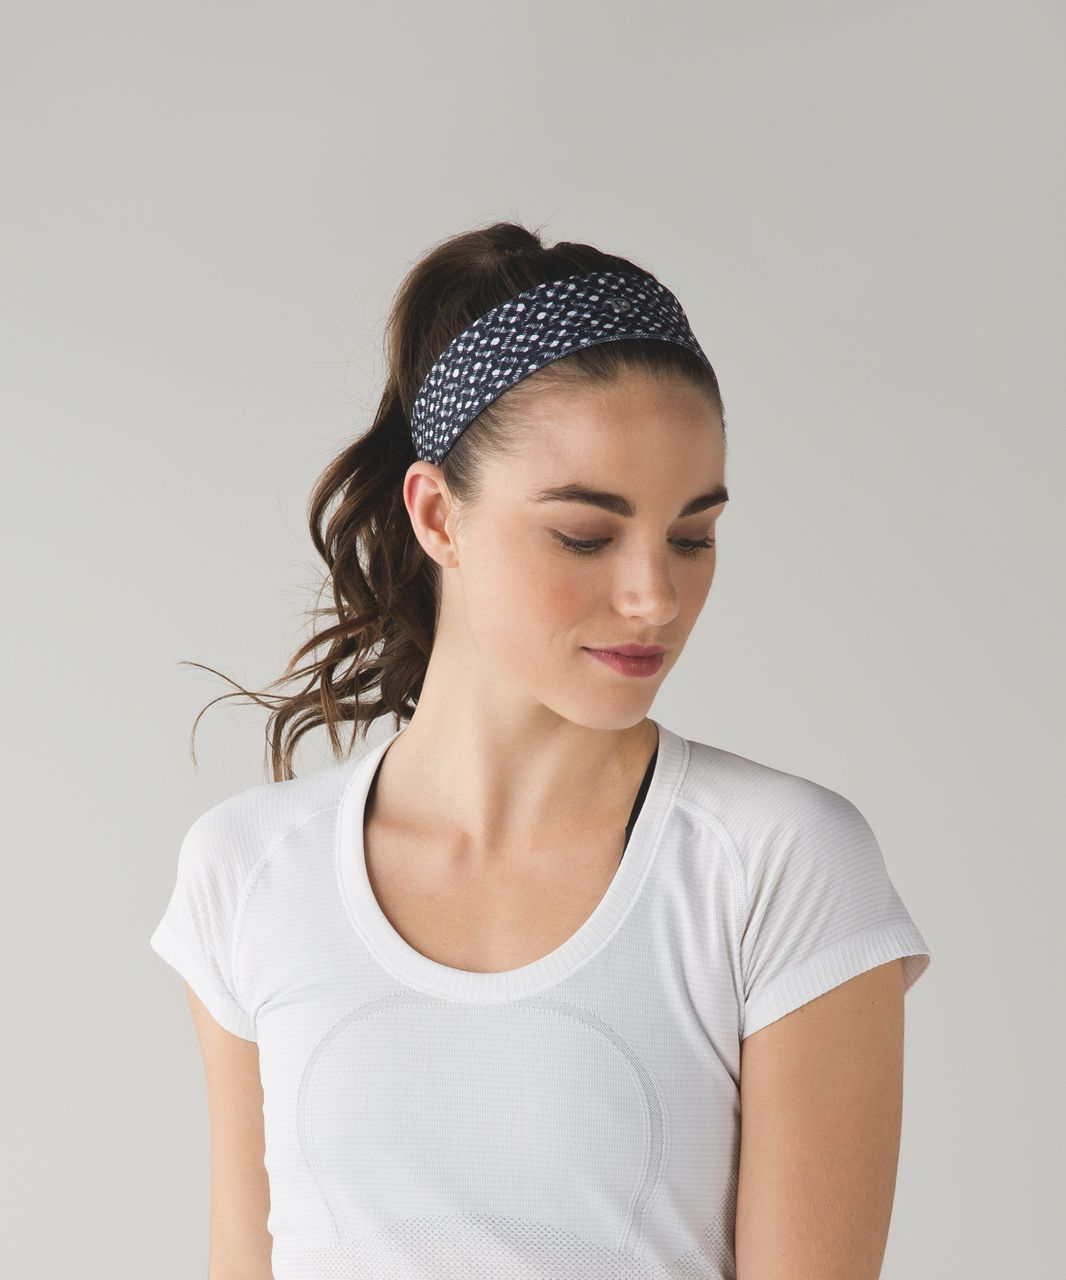 Lululemon Fly Away Tamer Headband 2.0 - Millie Mesh White Black